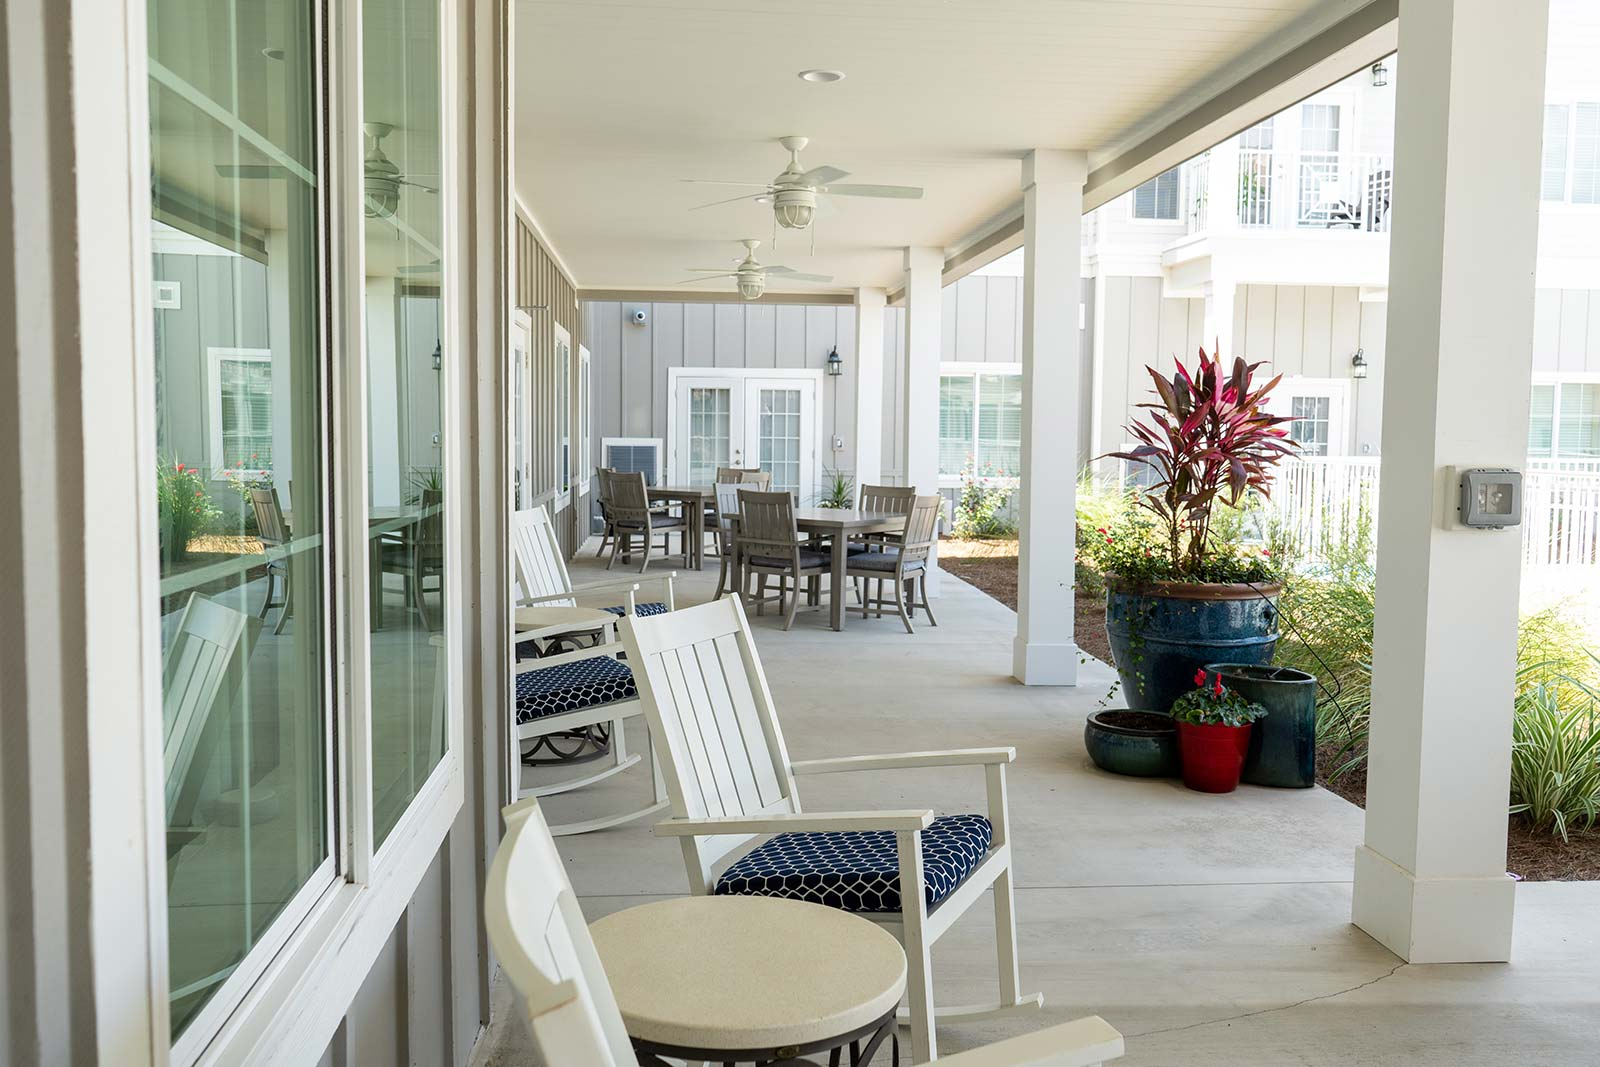 Covered Patio With Chairs And Tables At Seagrass Village Of Panama City Beach